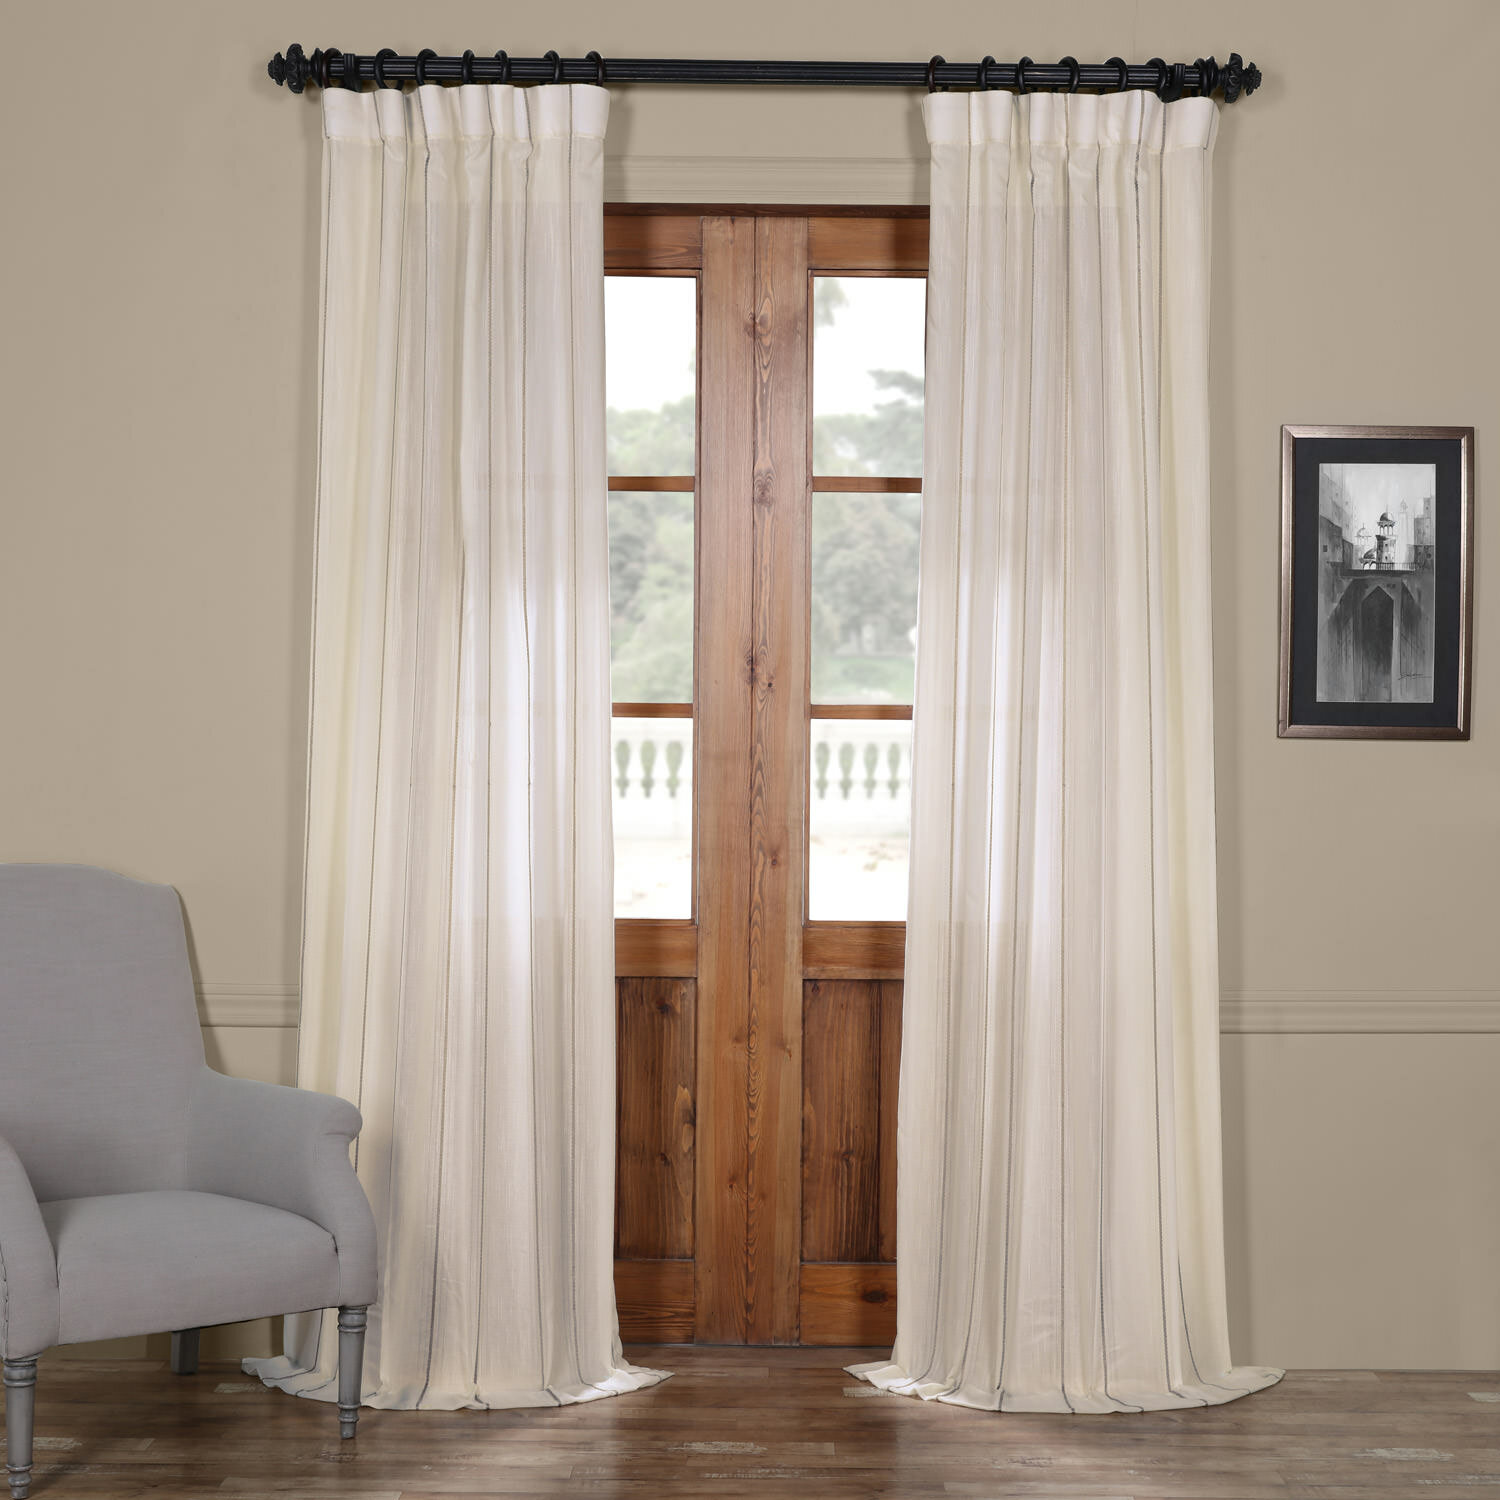 design a also with cdbossington for curtain curtains blackout inch interior